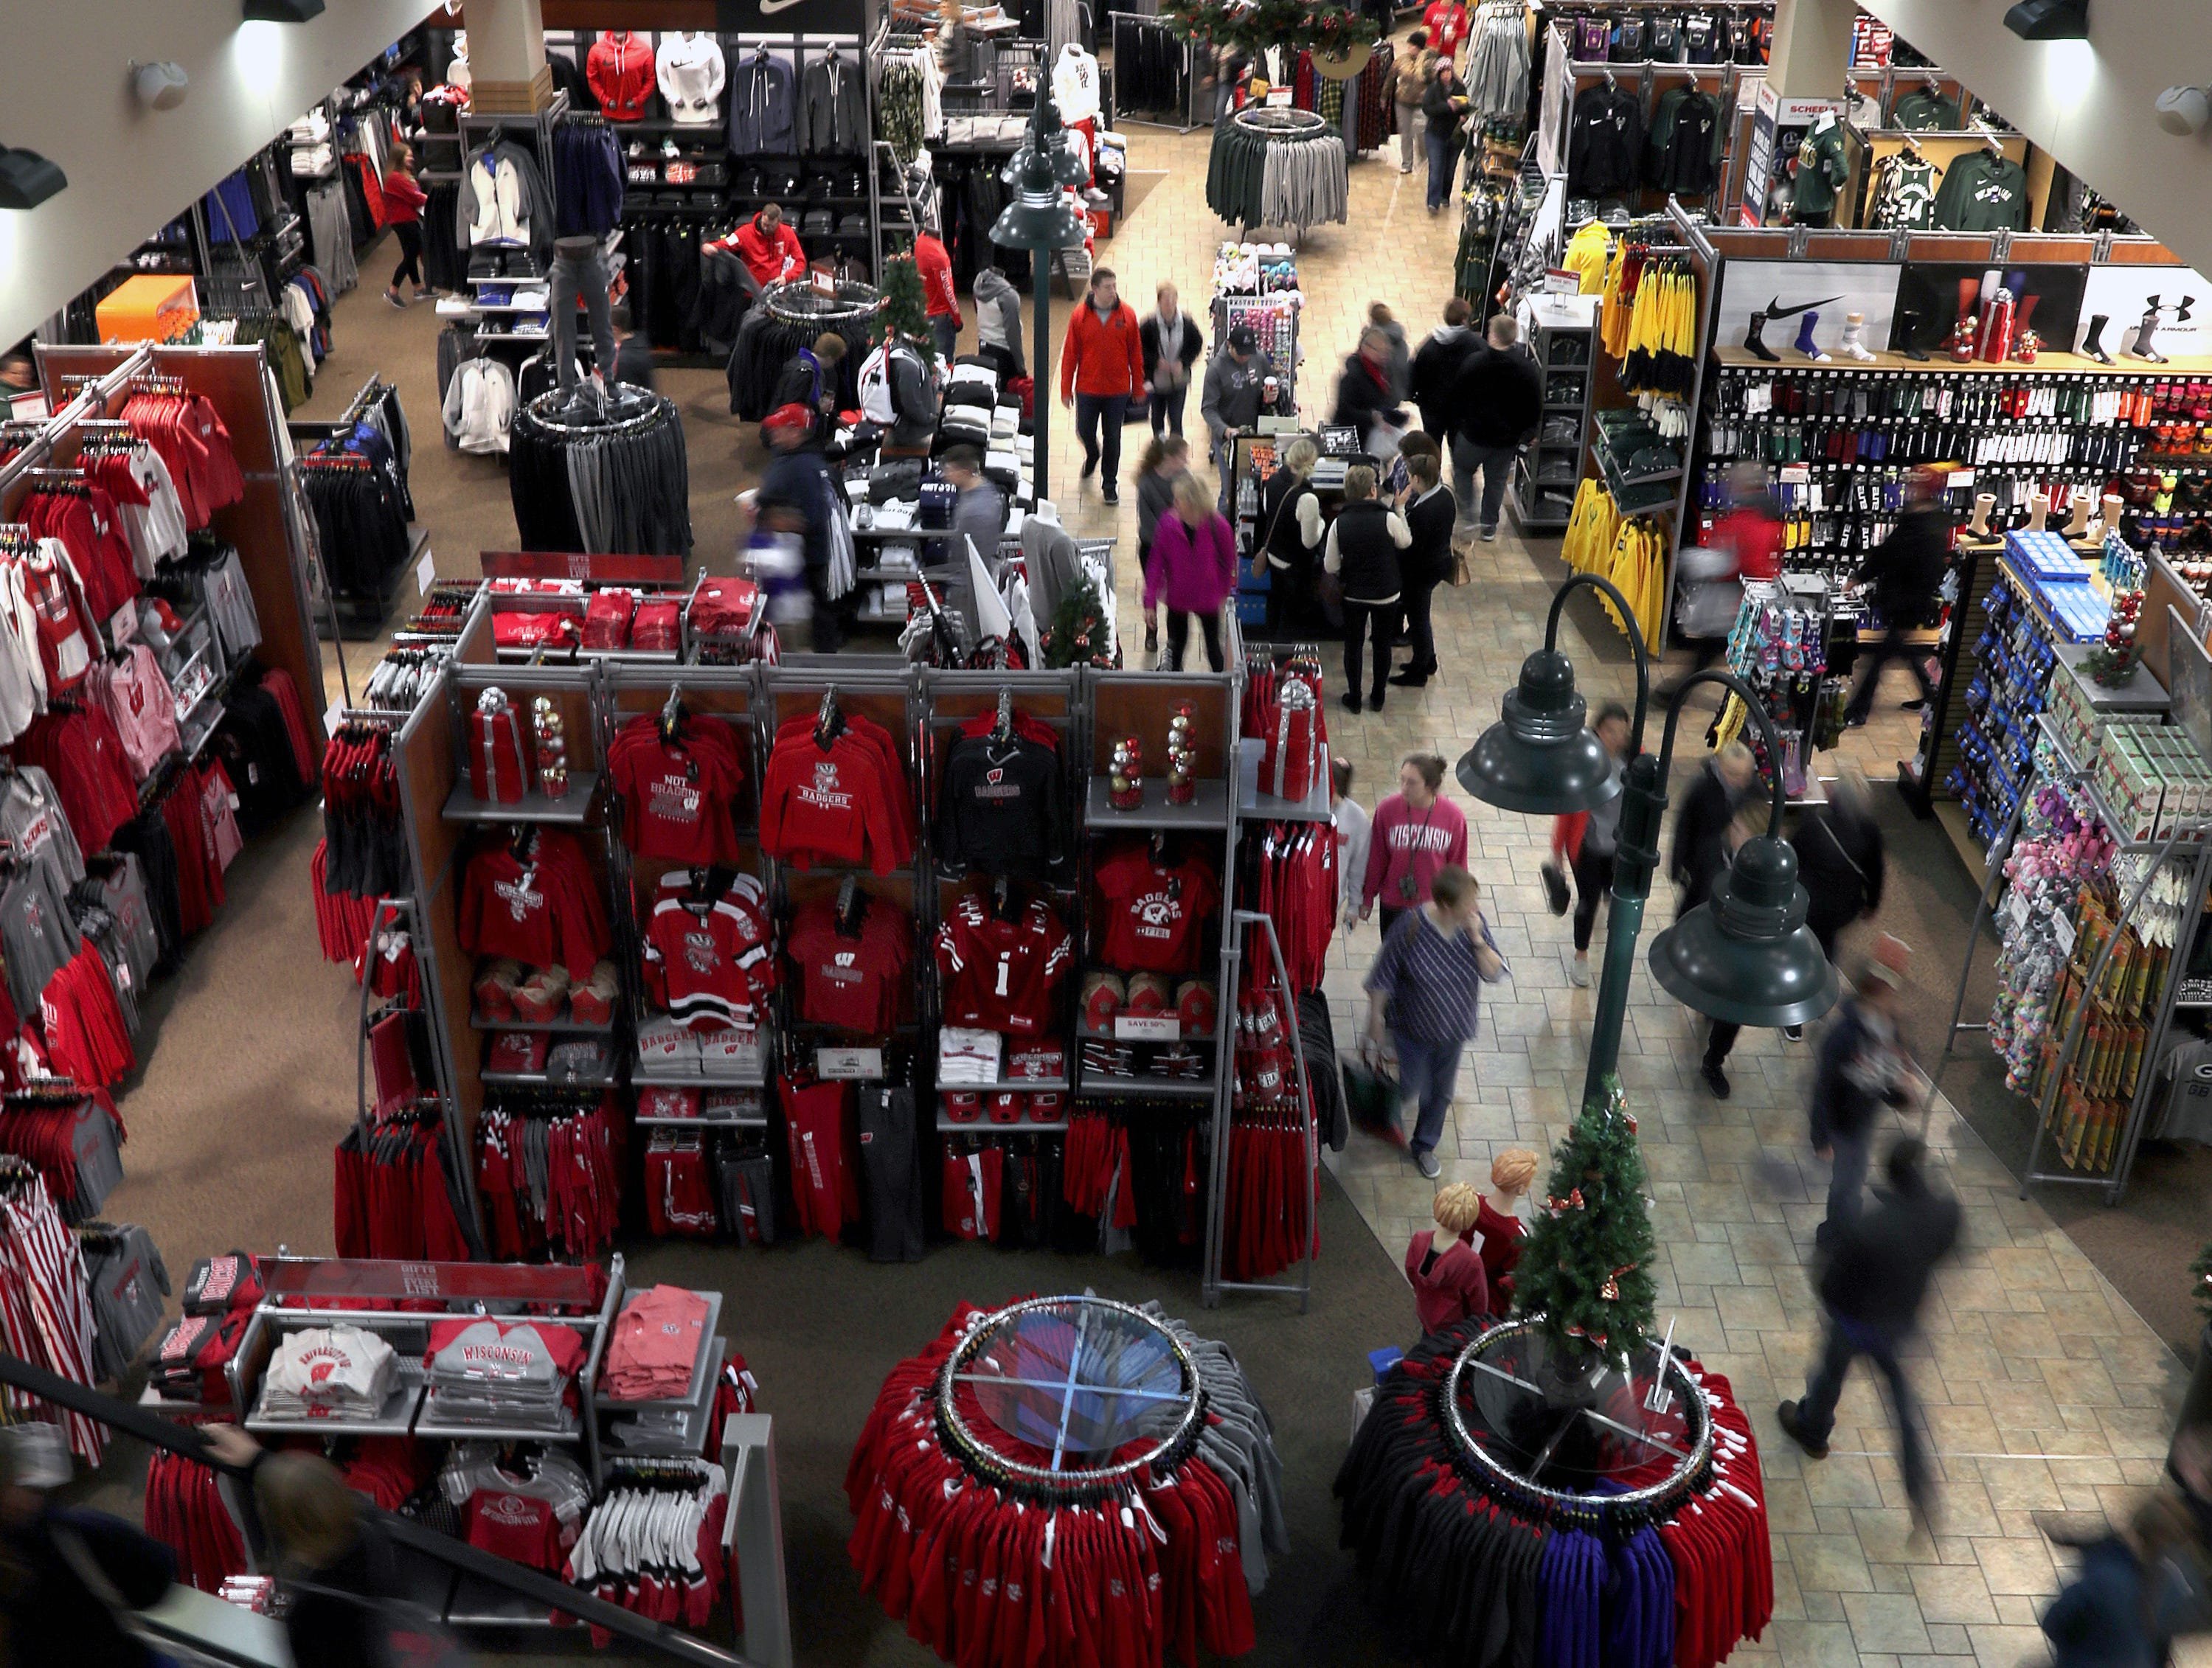 Shoppers looking for Black Friday deals at Scheels on Friday, Nov. 23, 2018 in Grand Chute, Wis